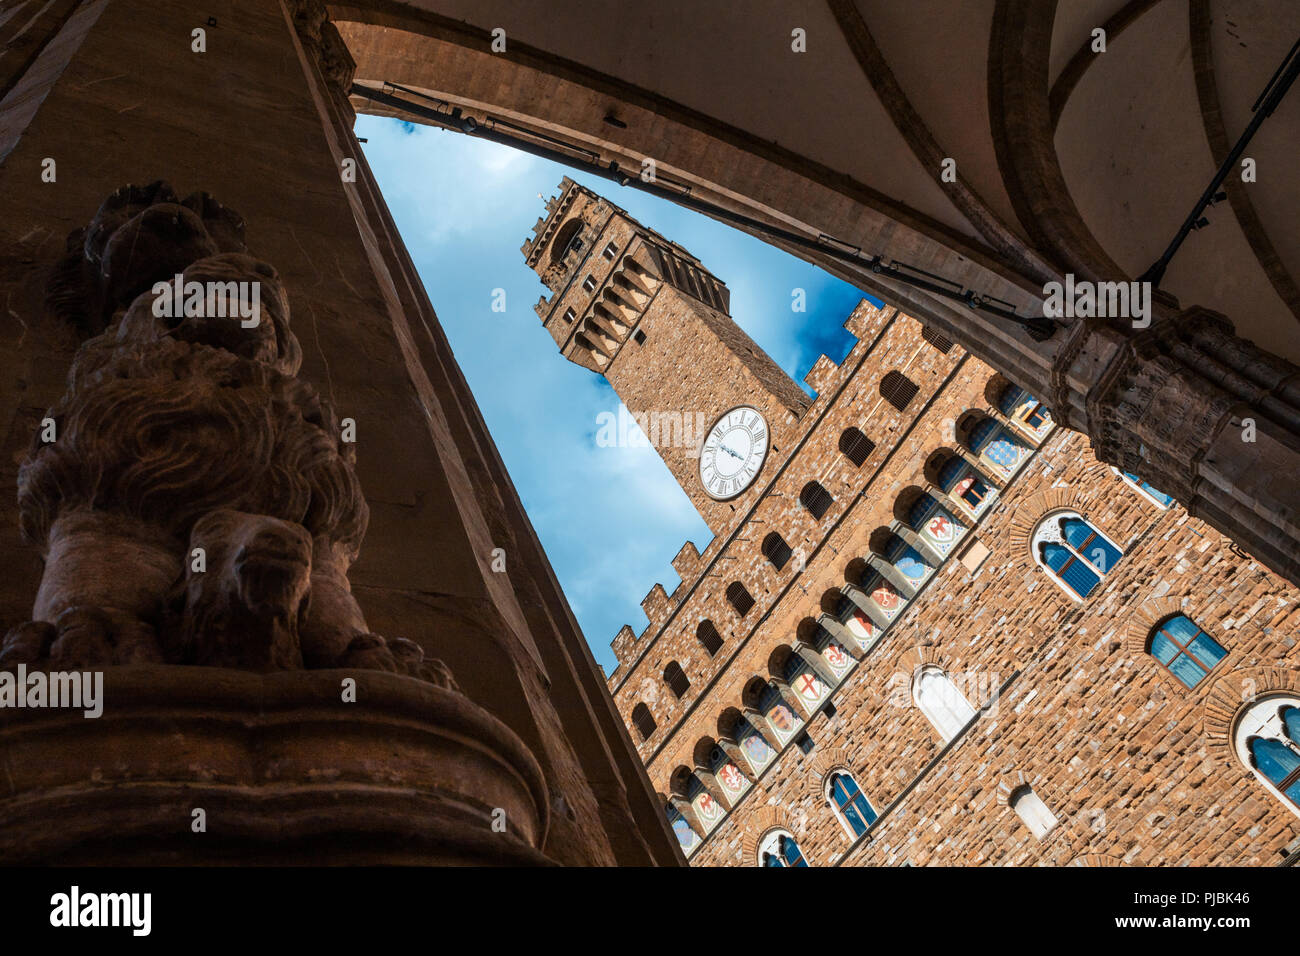 View of the 14th-century Palazzo Vecchio with its crenellated tower - Stock Image